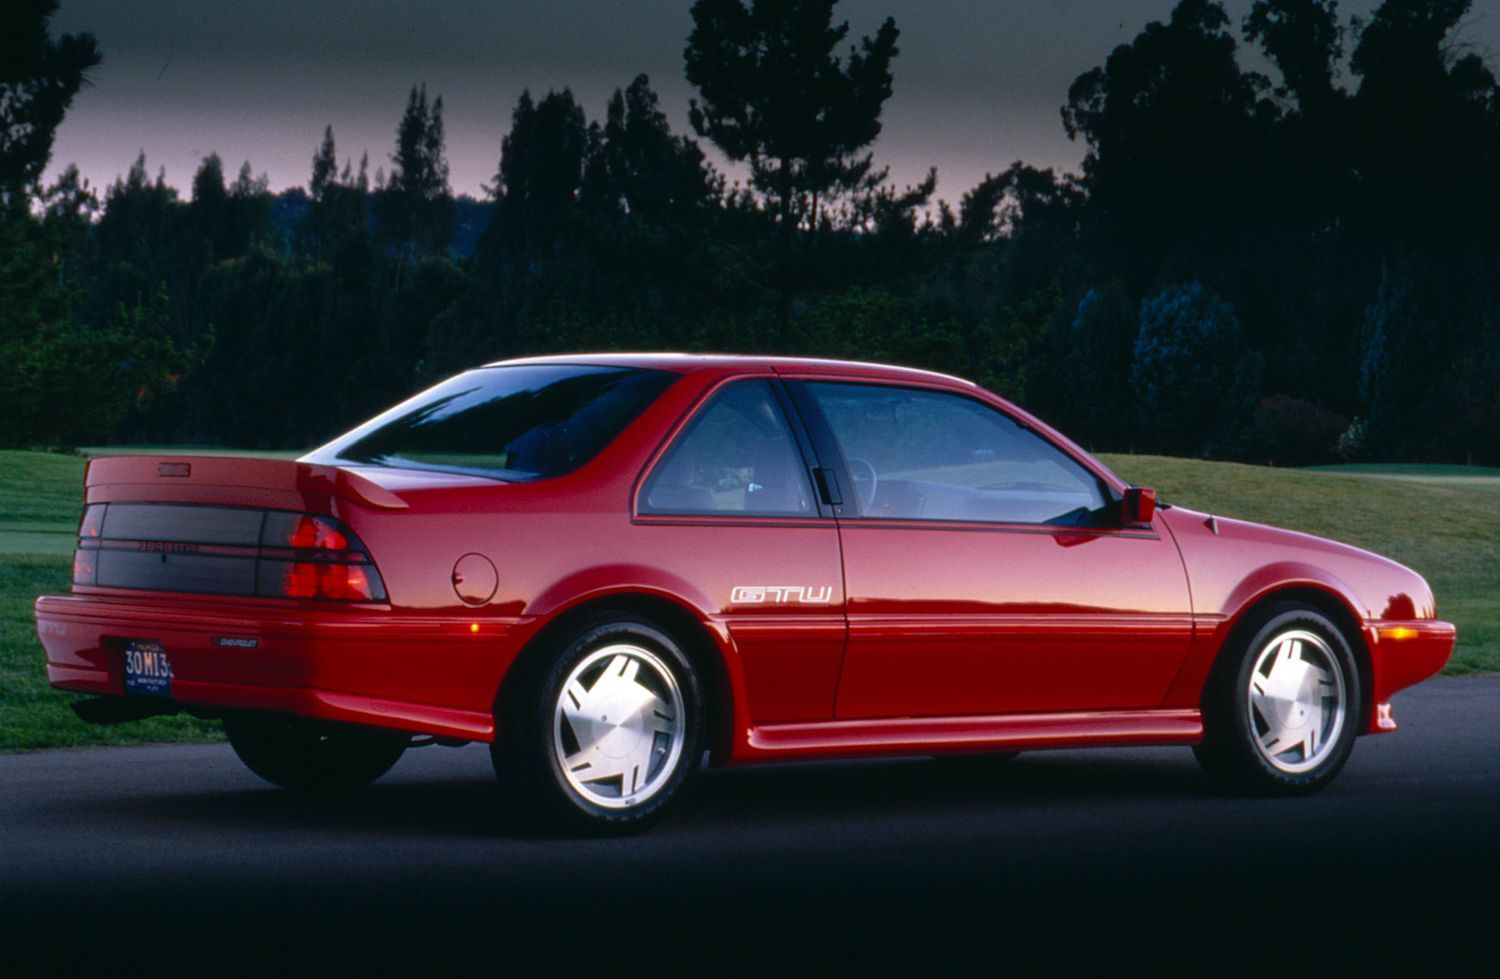 All Chevy 95 chevy beretta : Red 1991 Chevy Beretta one of the cars we had when I was a kid.My ...